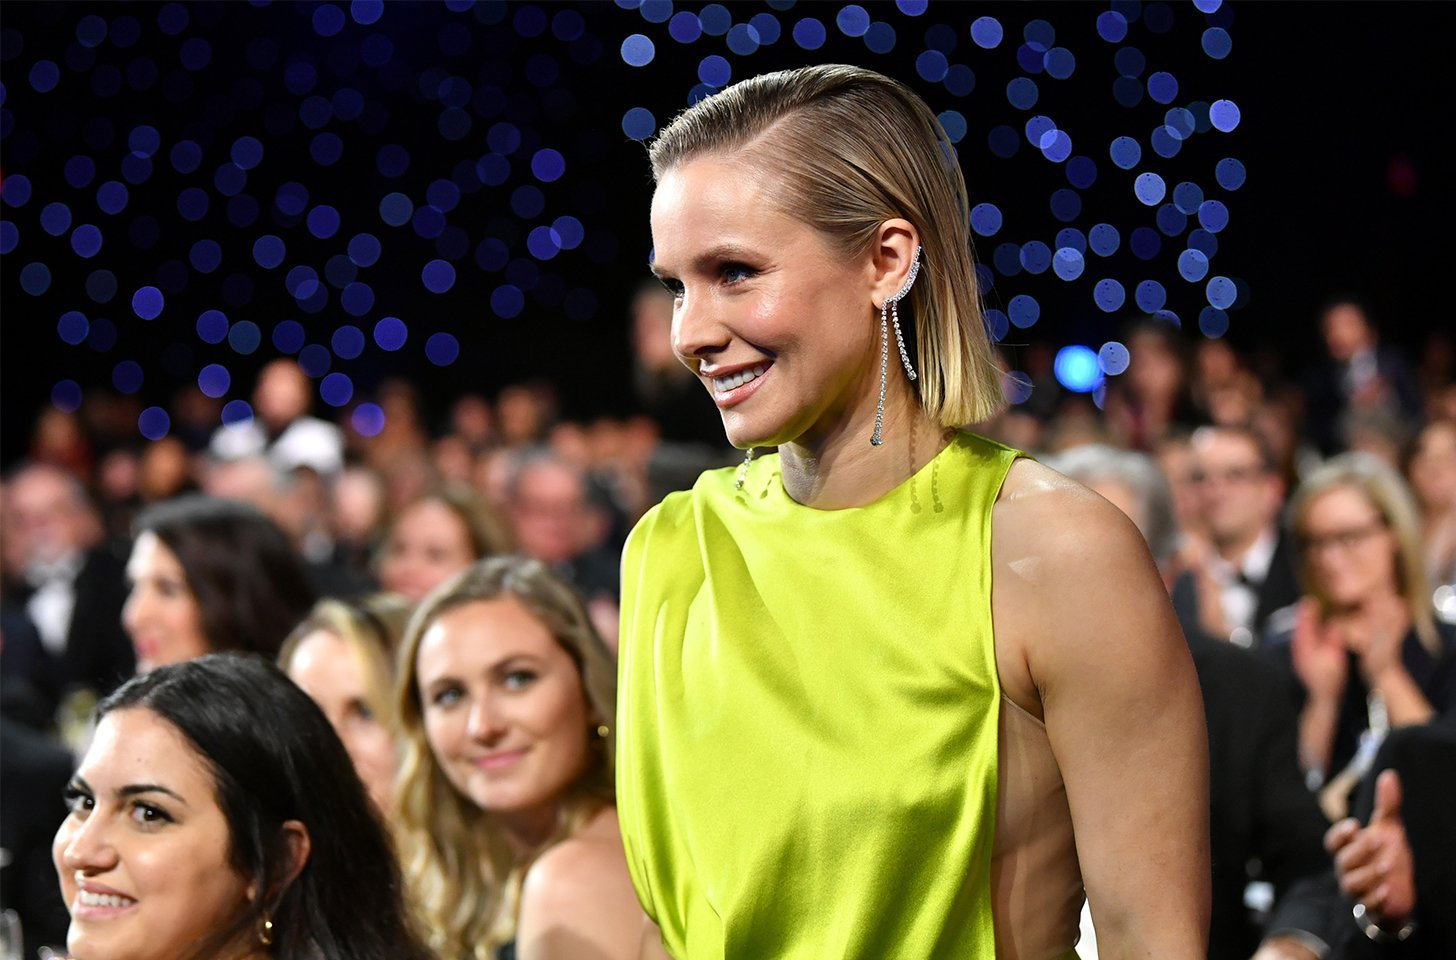 Kristen Bell Cheating On Dax Shepard With 'Mystery Man'?